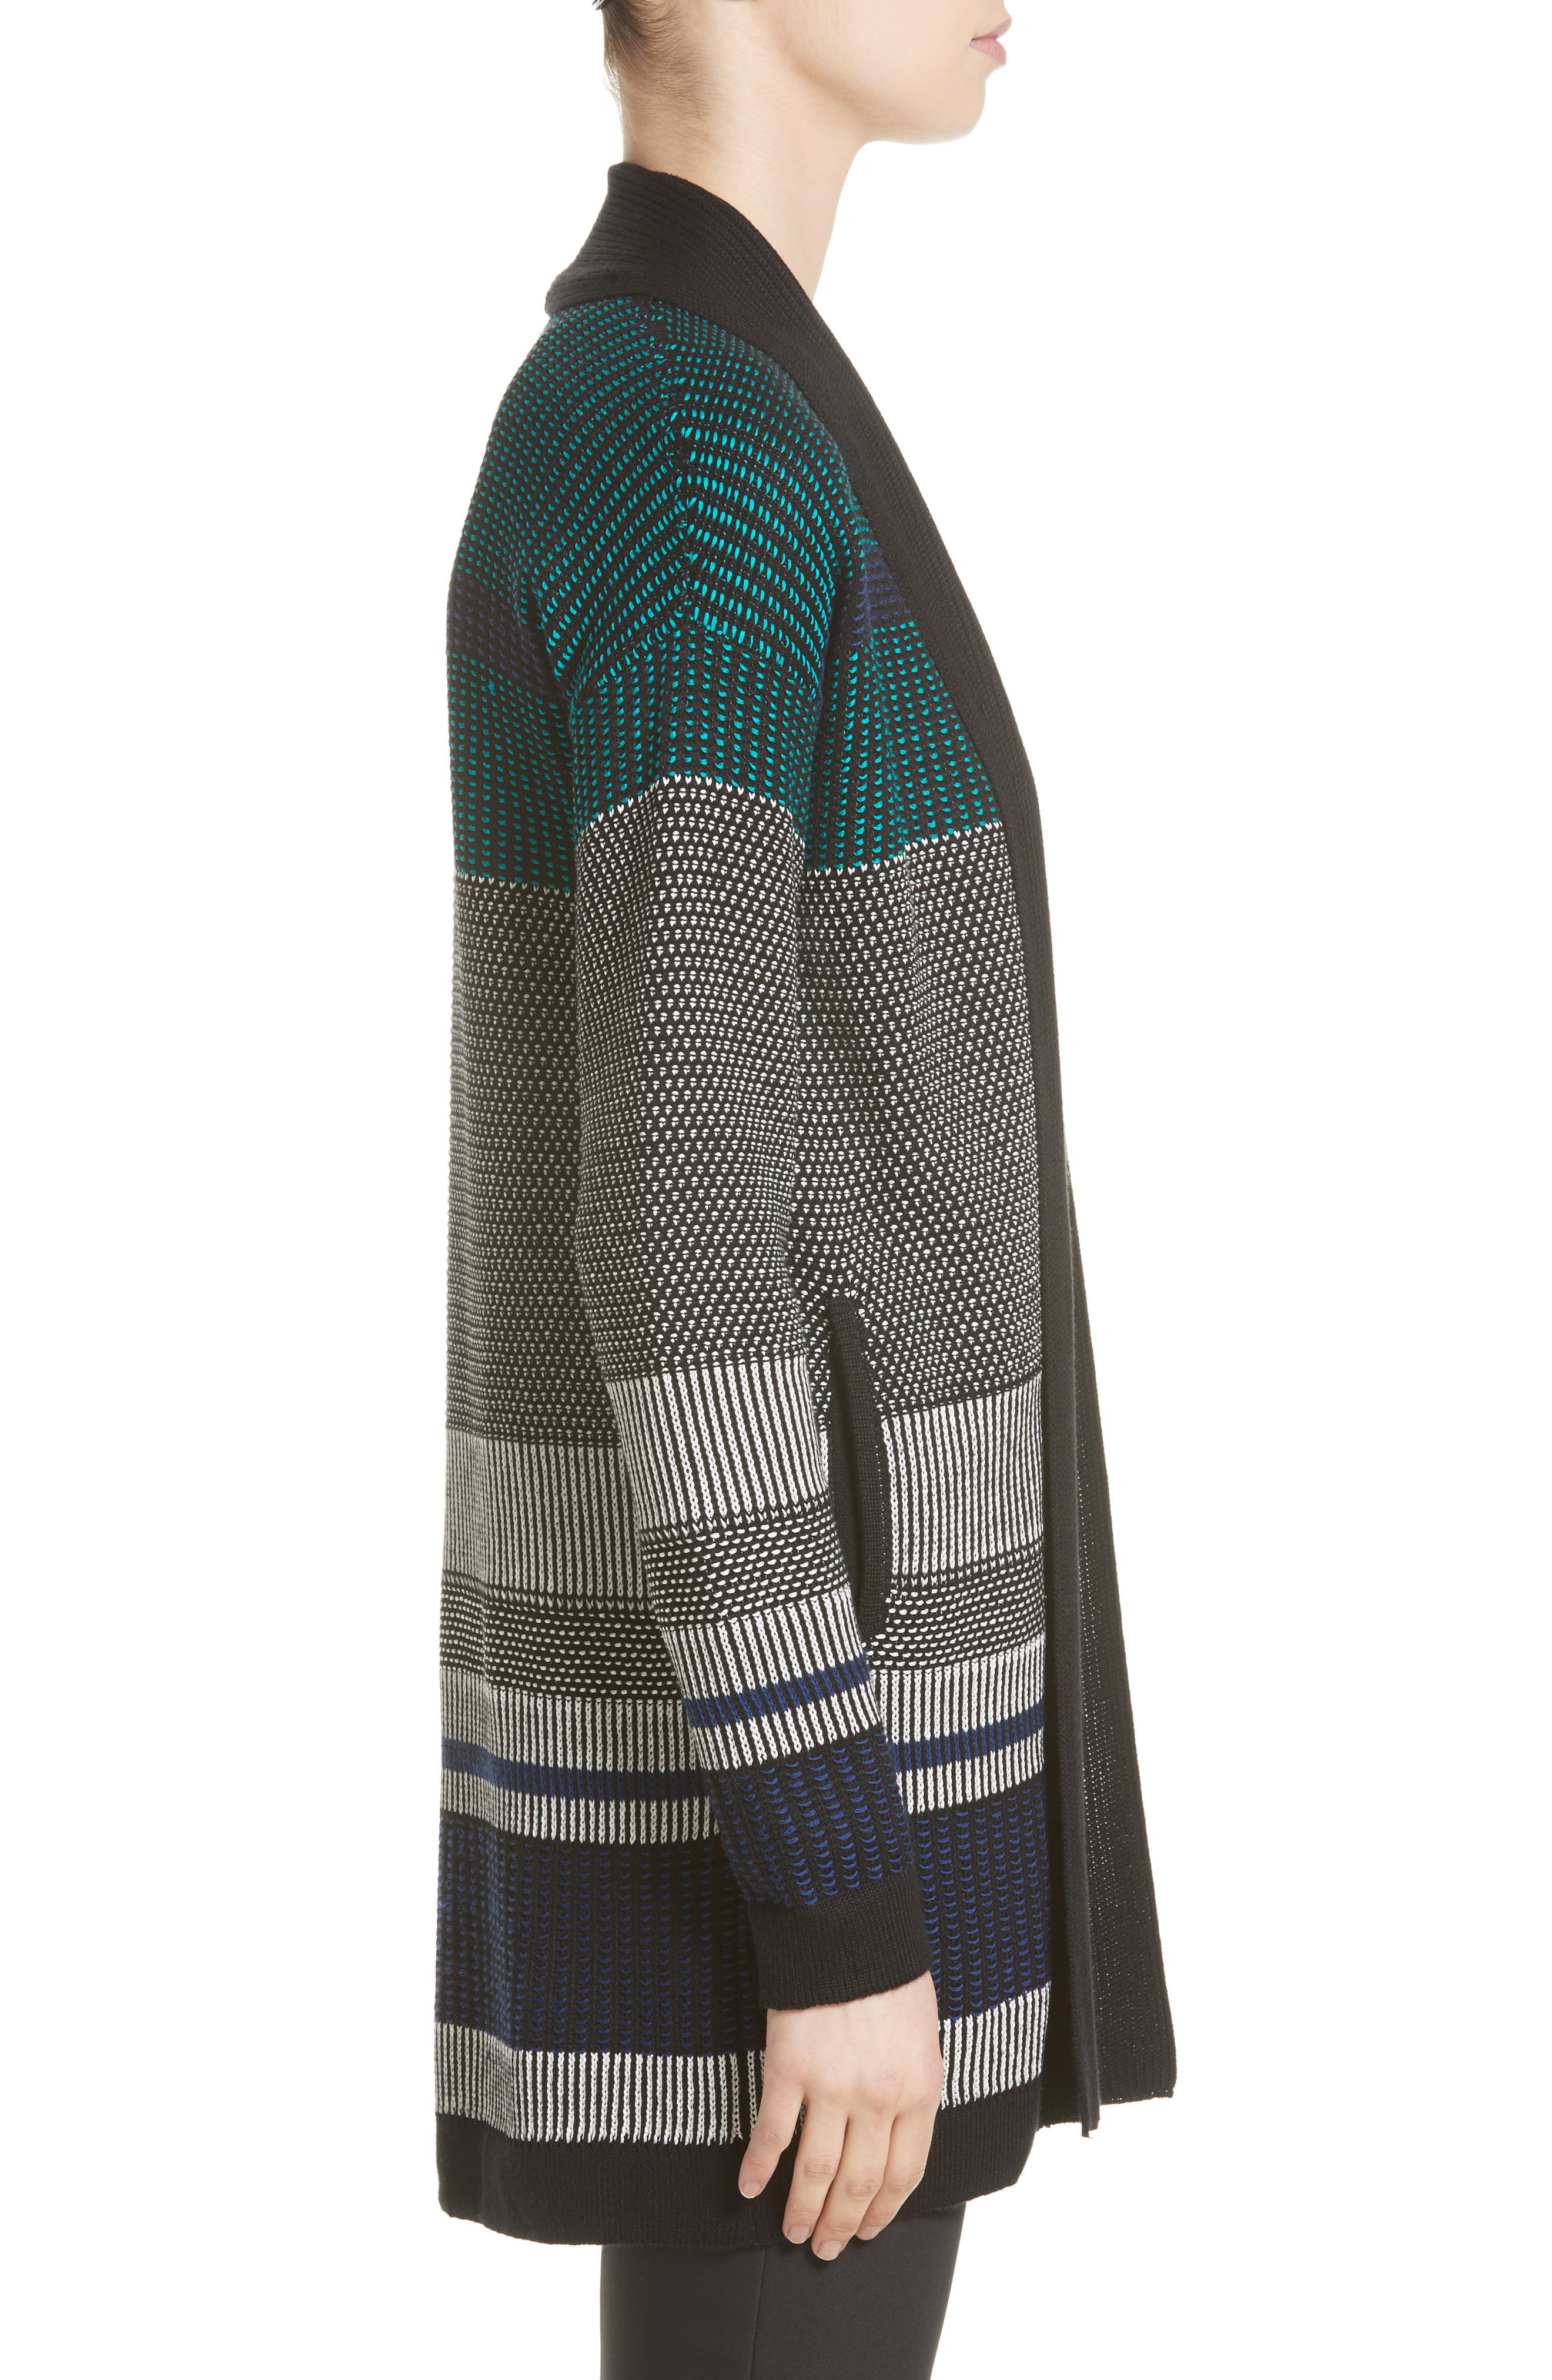 Alternate Image 3  - St. John Collection Engineered Inlay Stitch Knit Cardigan